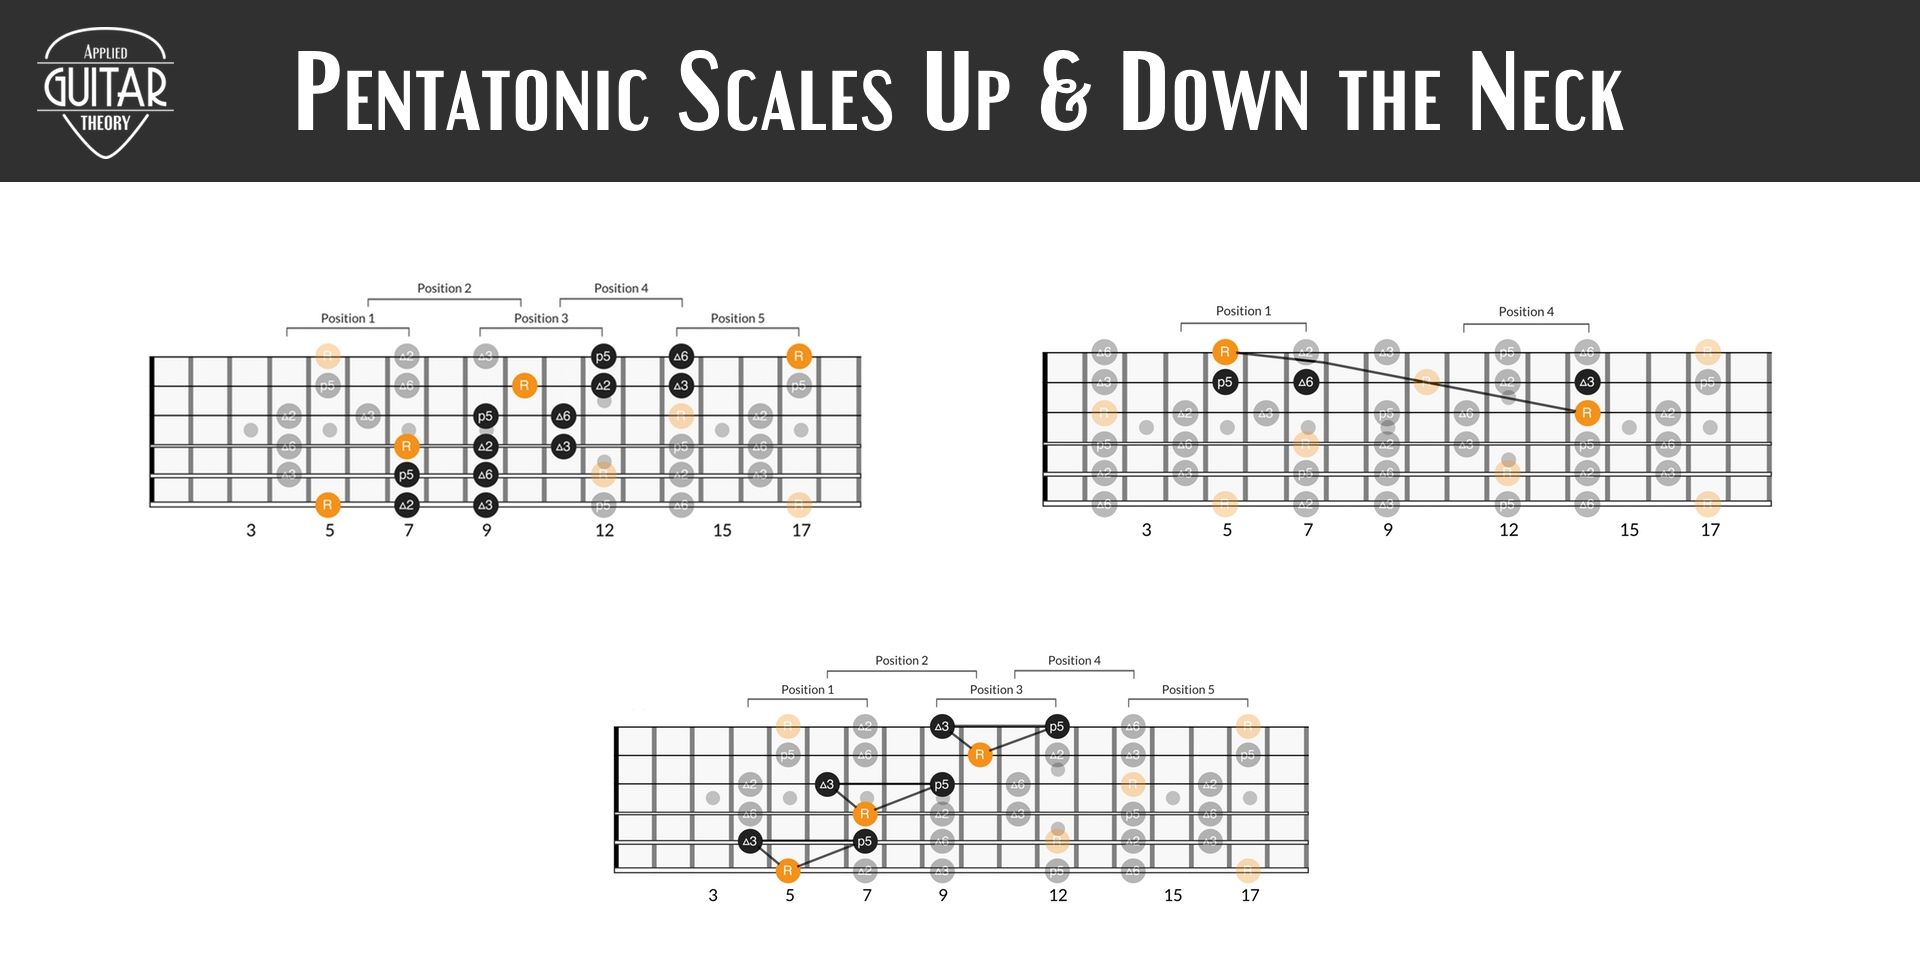 Pentatonic scales up and down the neck diagrams image